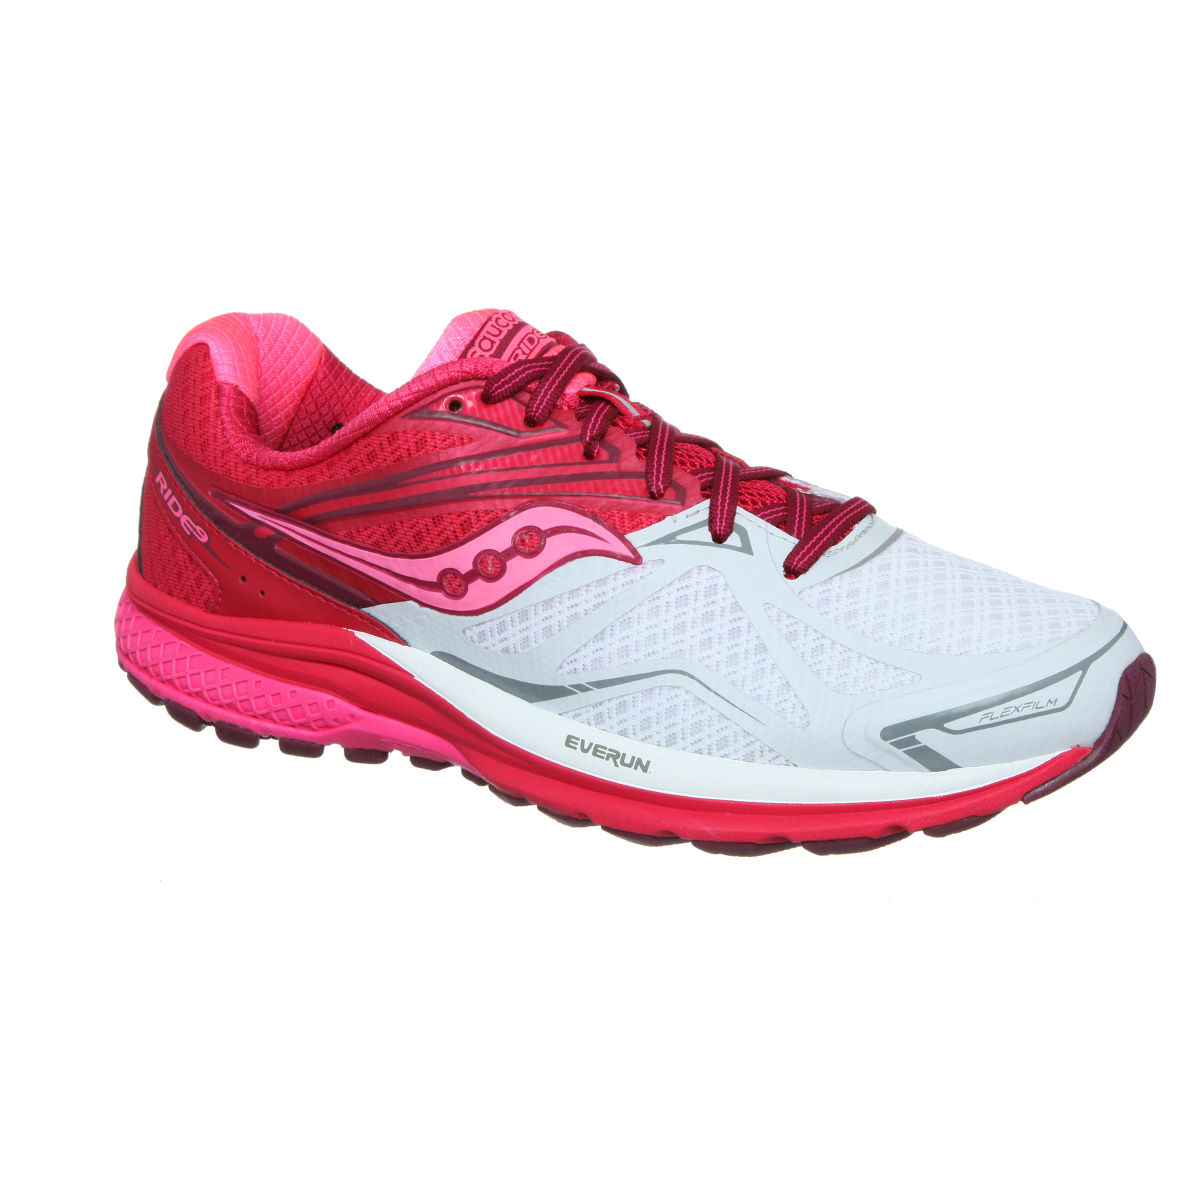 Chaussures Femme Saucony Ride 9 - UK 4 White / Berry / Pink